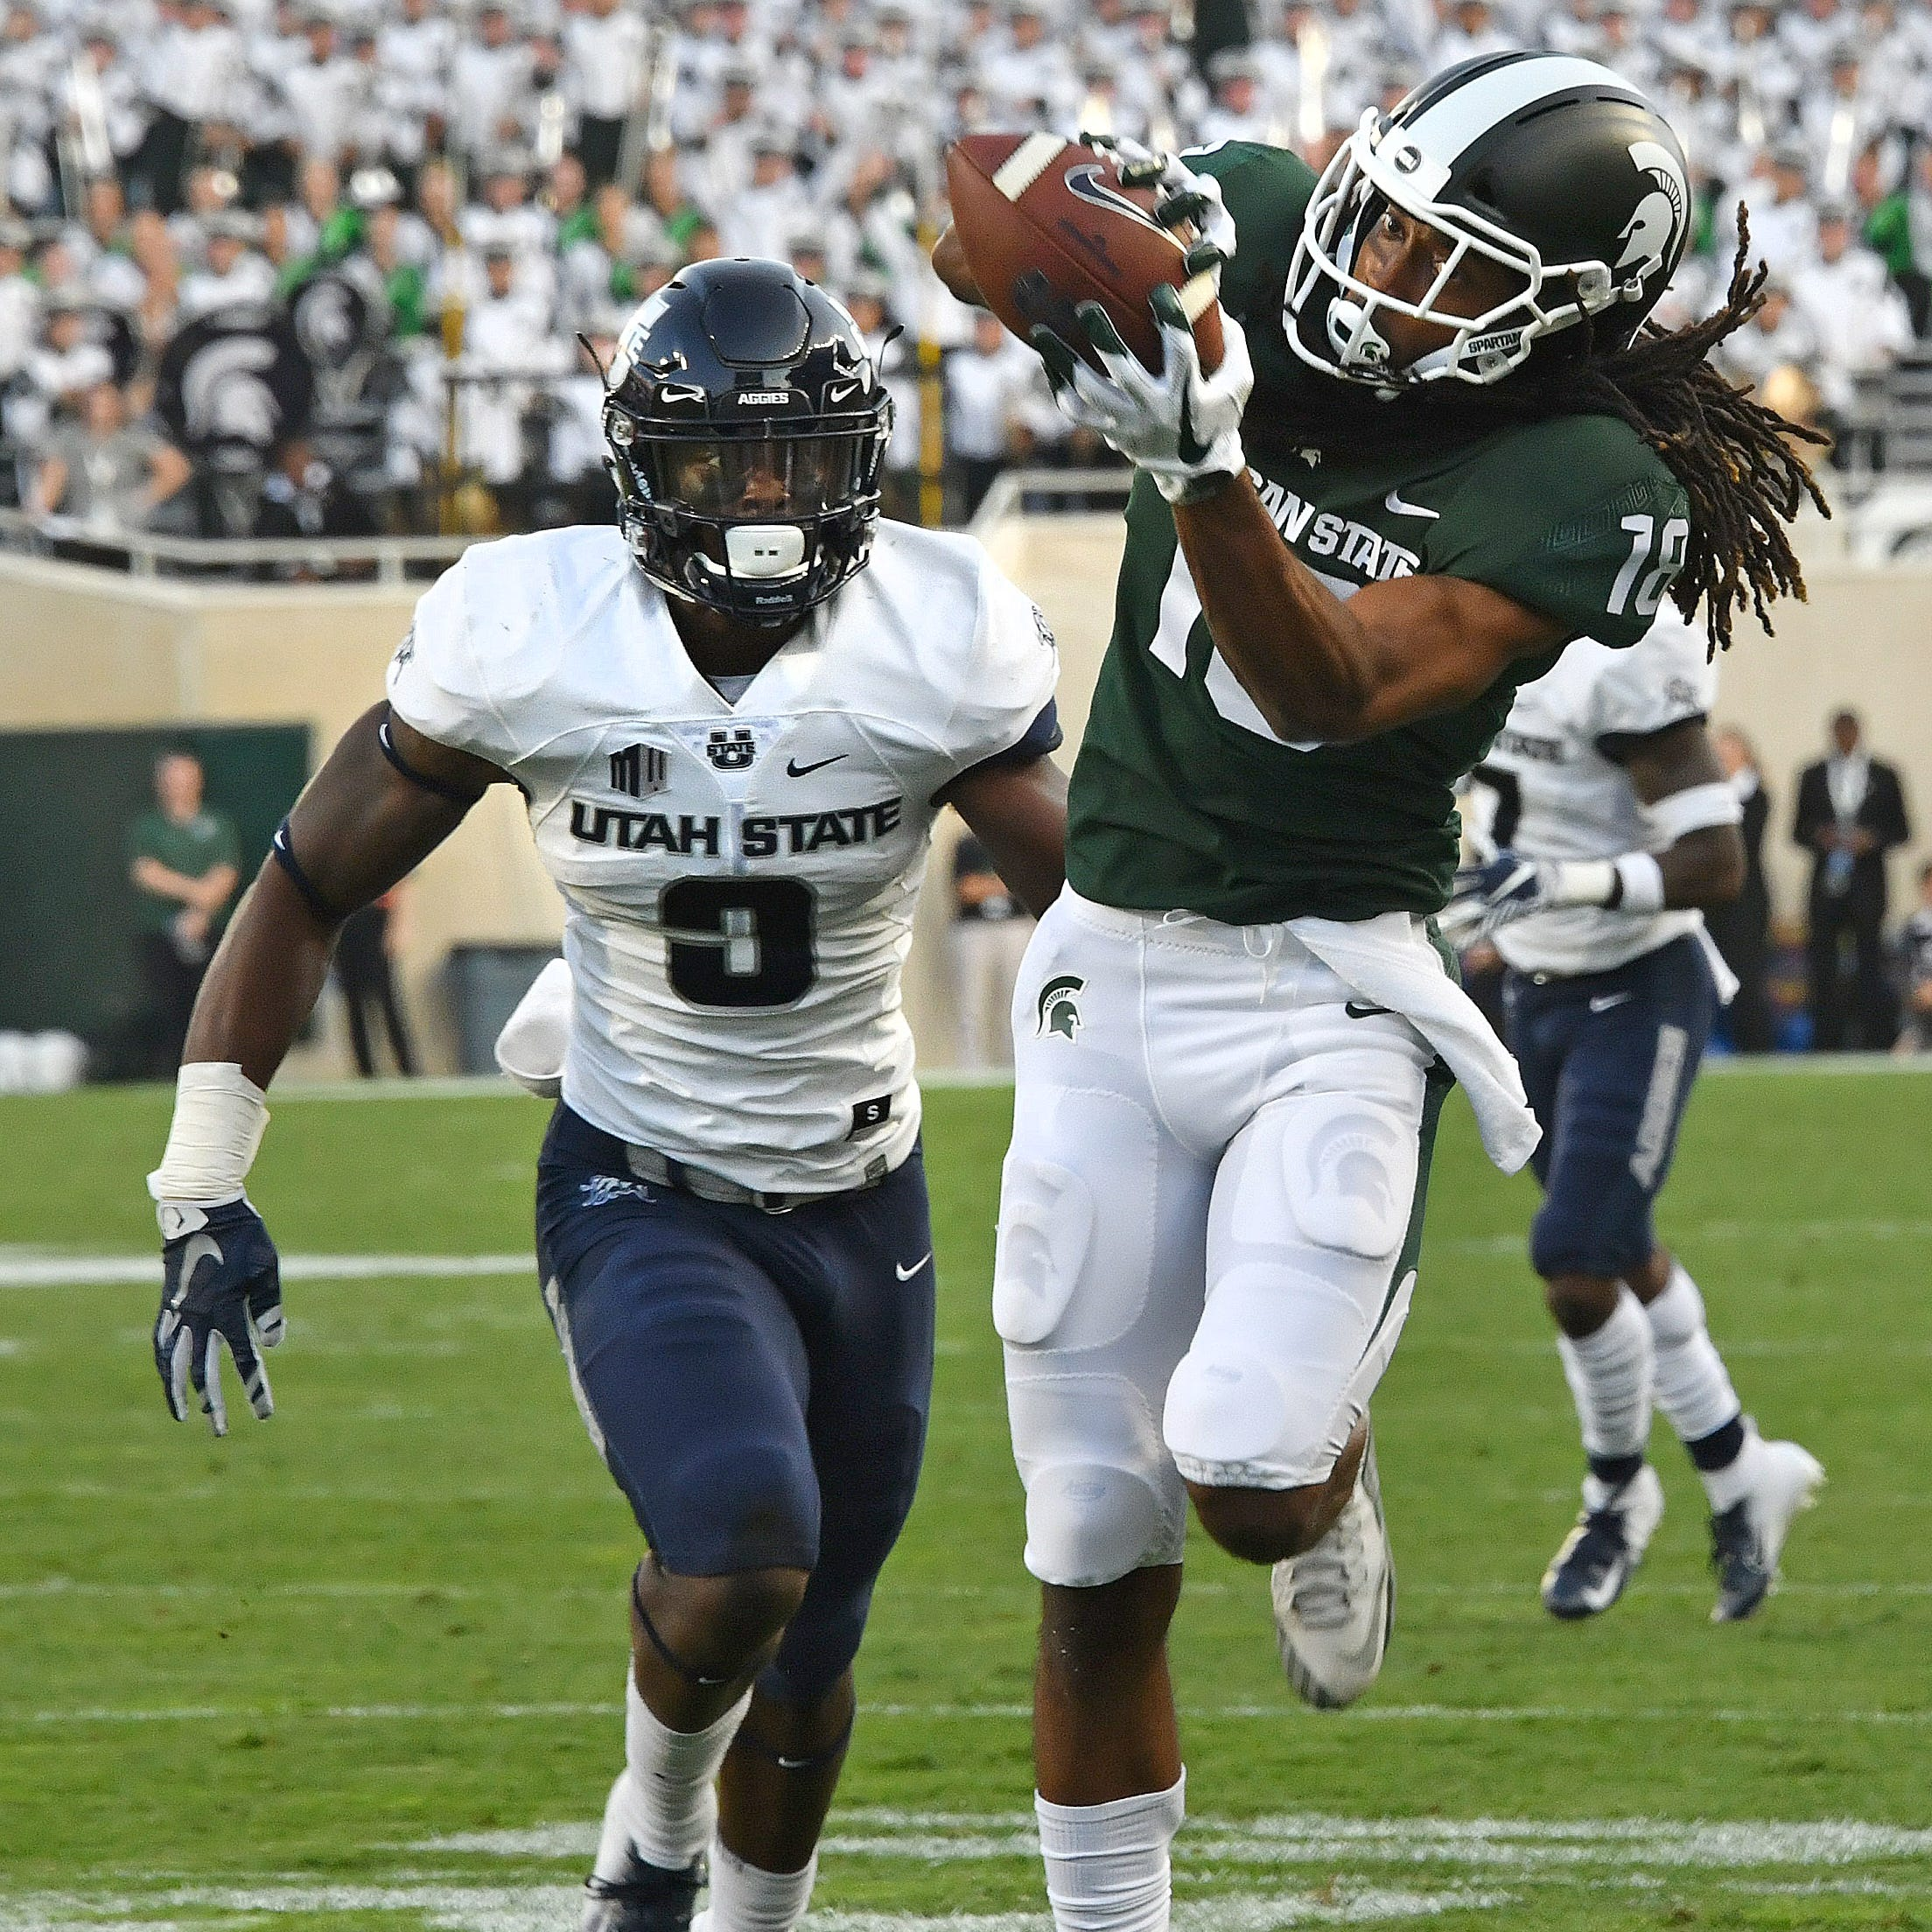 Michigan State sees Big Ten opener as chance for relaunch